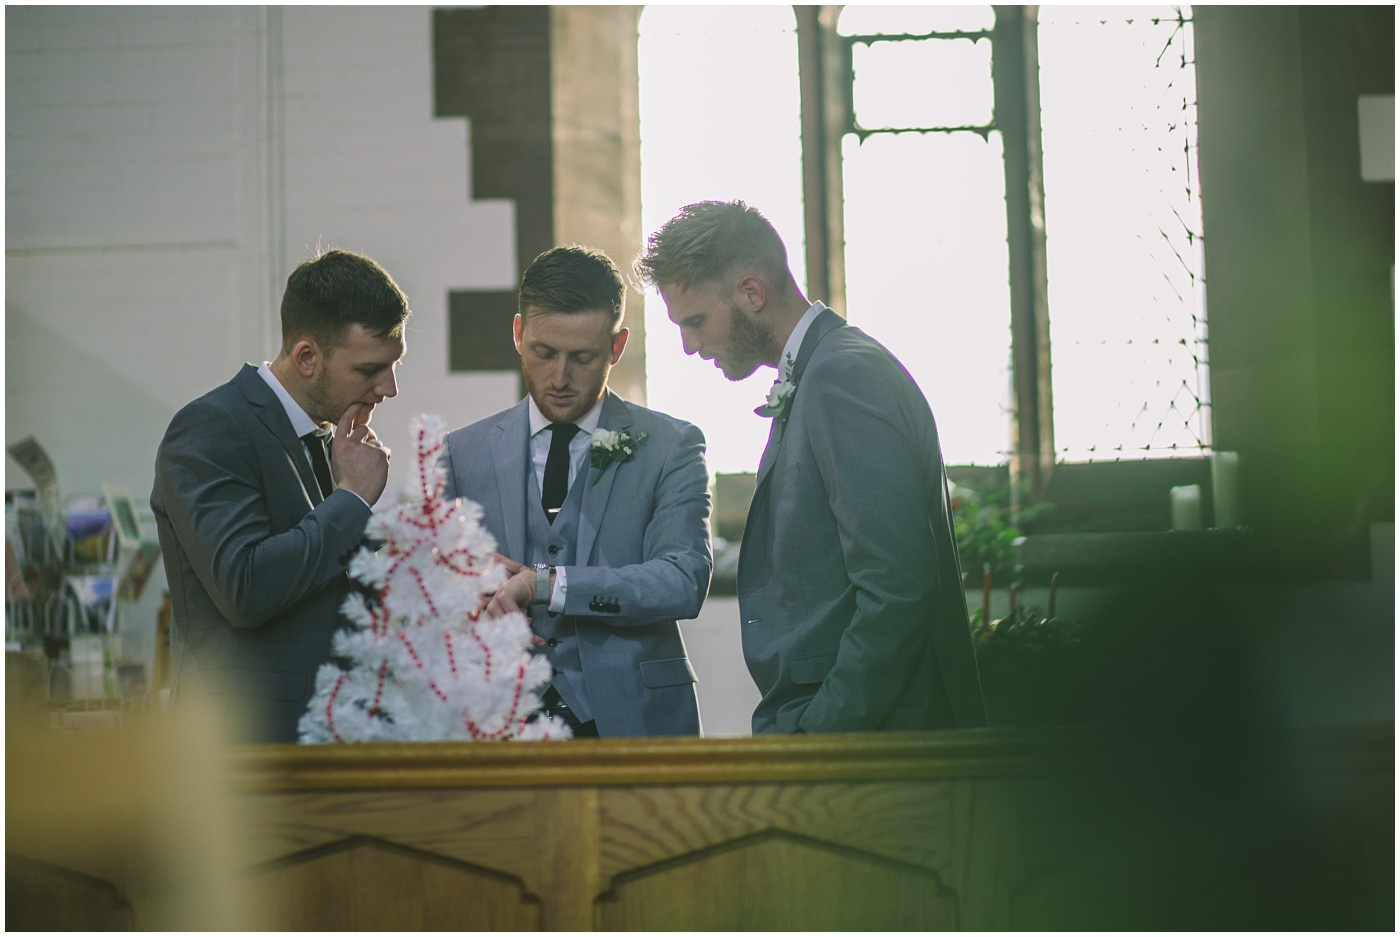 Groom checks his watch at church as he waits for his bride